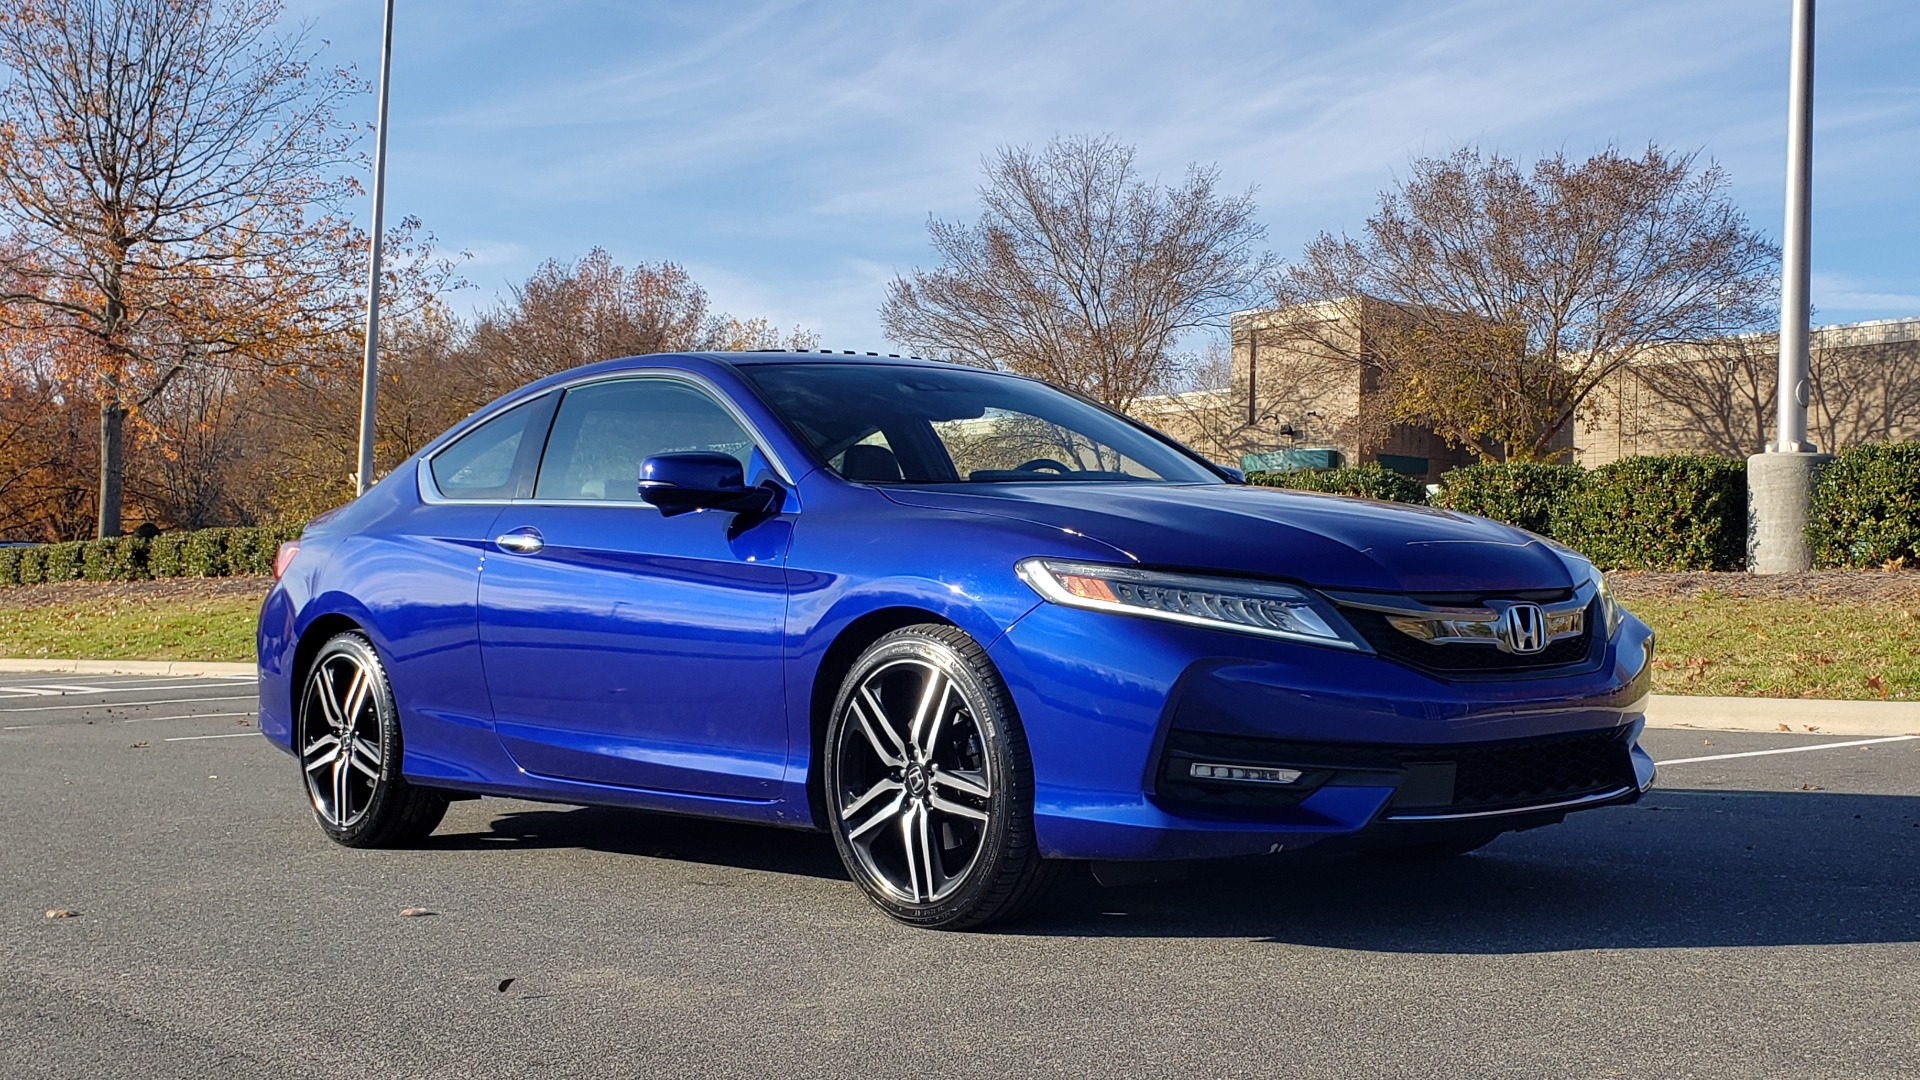 Used 2017 Honda ACCORD COUPE TOURING V6 / 2-DR / NAV / SUNROOF / LANEWATCH / CMBS for sale Sold at Formula Imports in Charlotte NC 28227 11